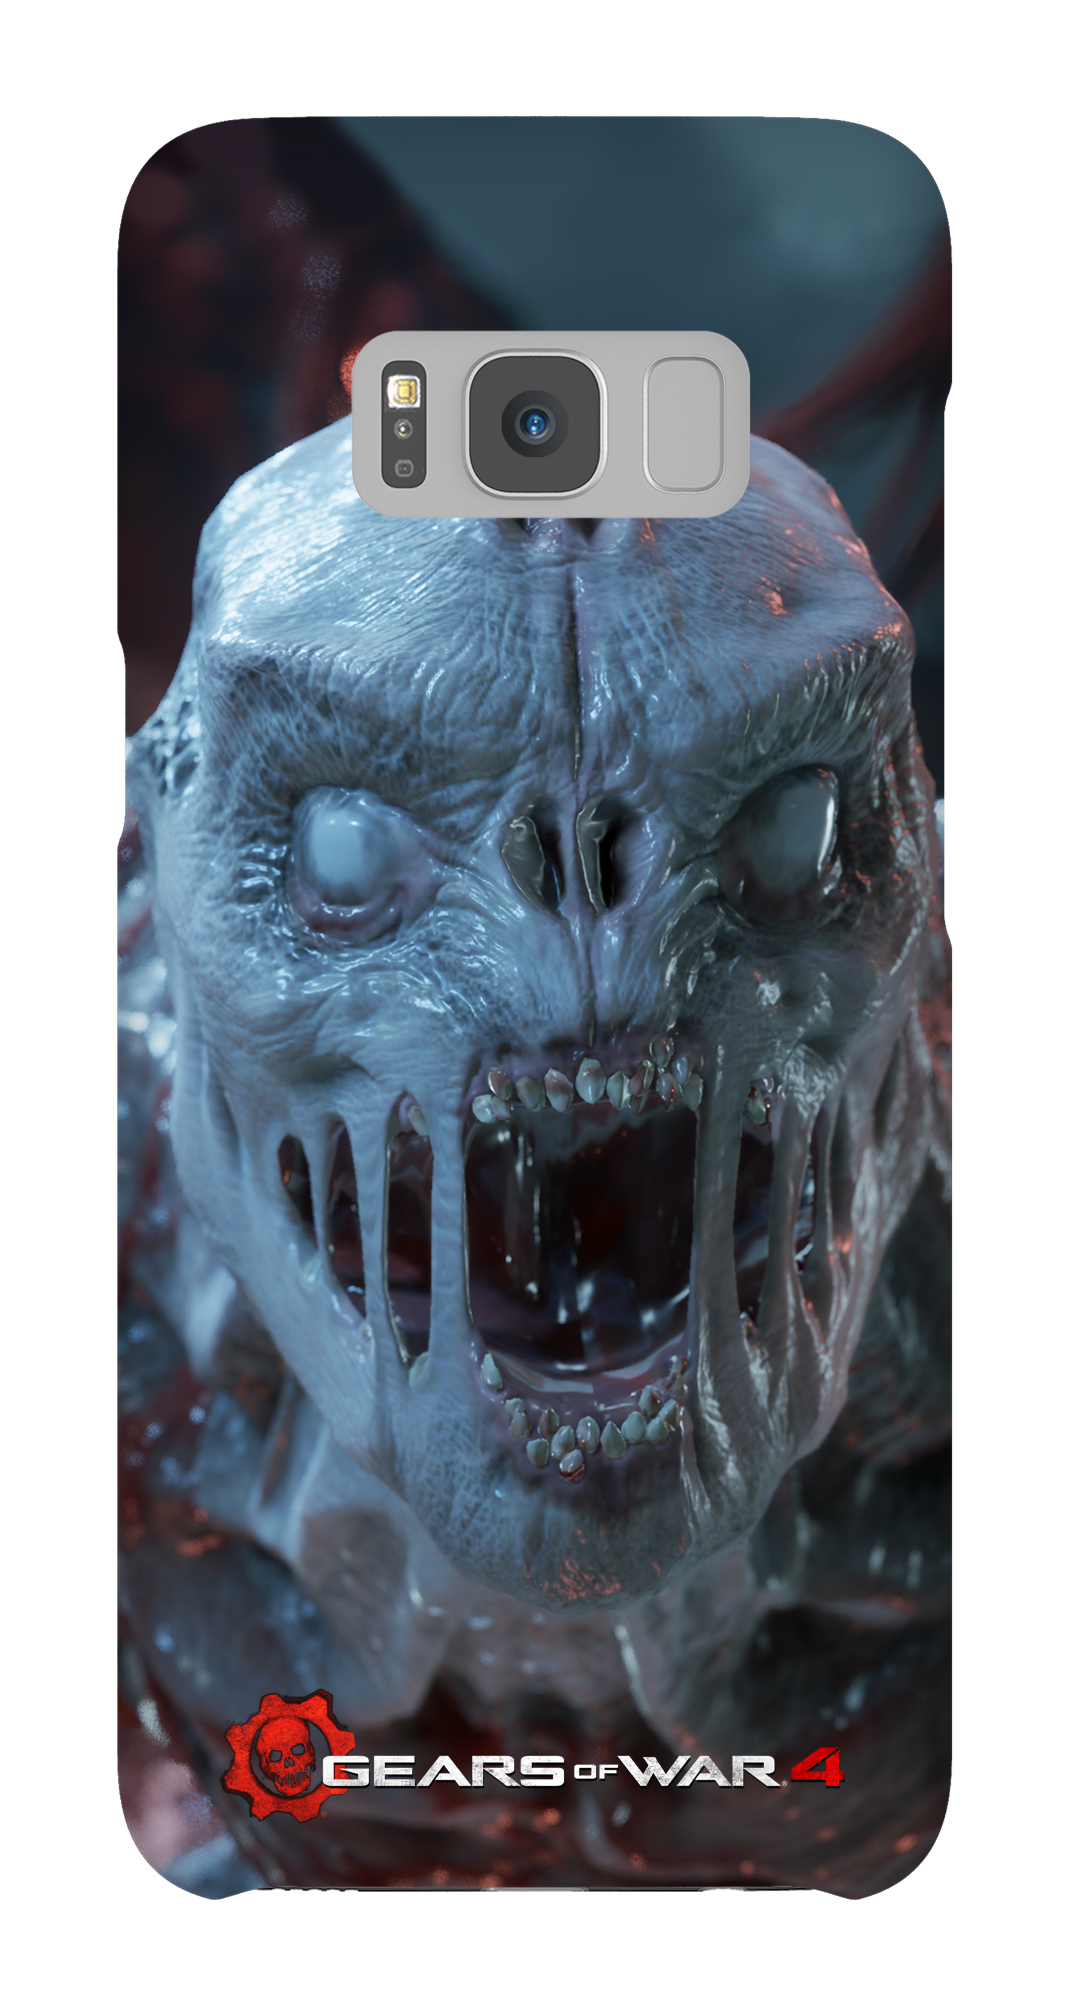 Gears of War 4: Juvie Galaxy S8 Snap Case Gloss